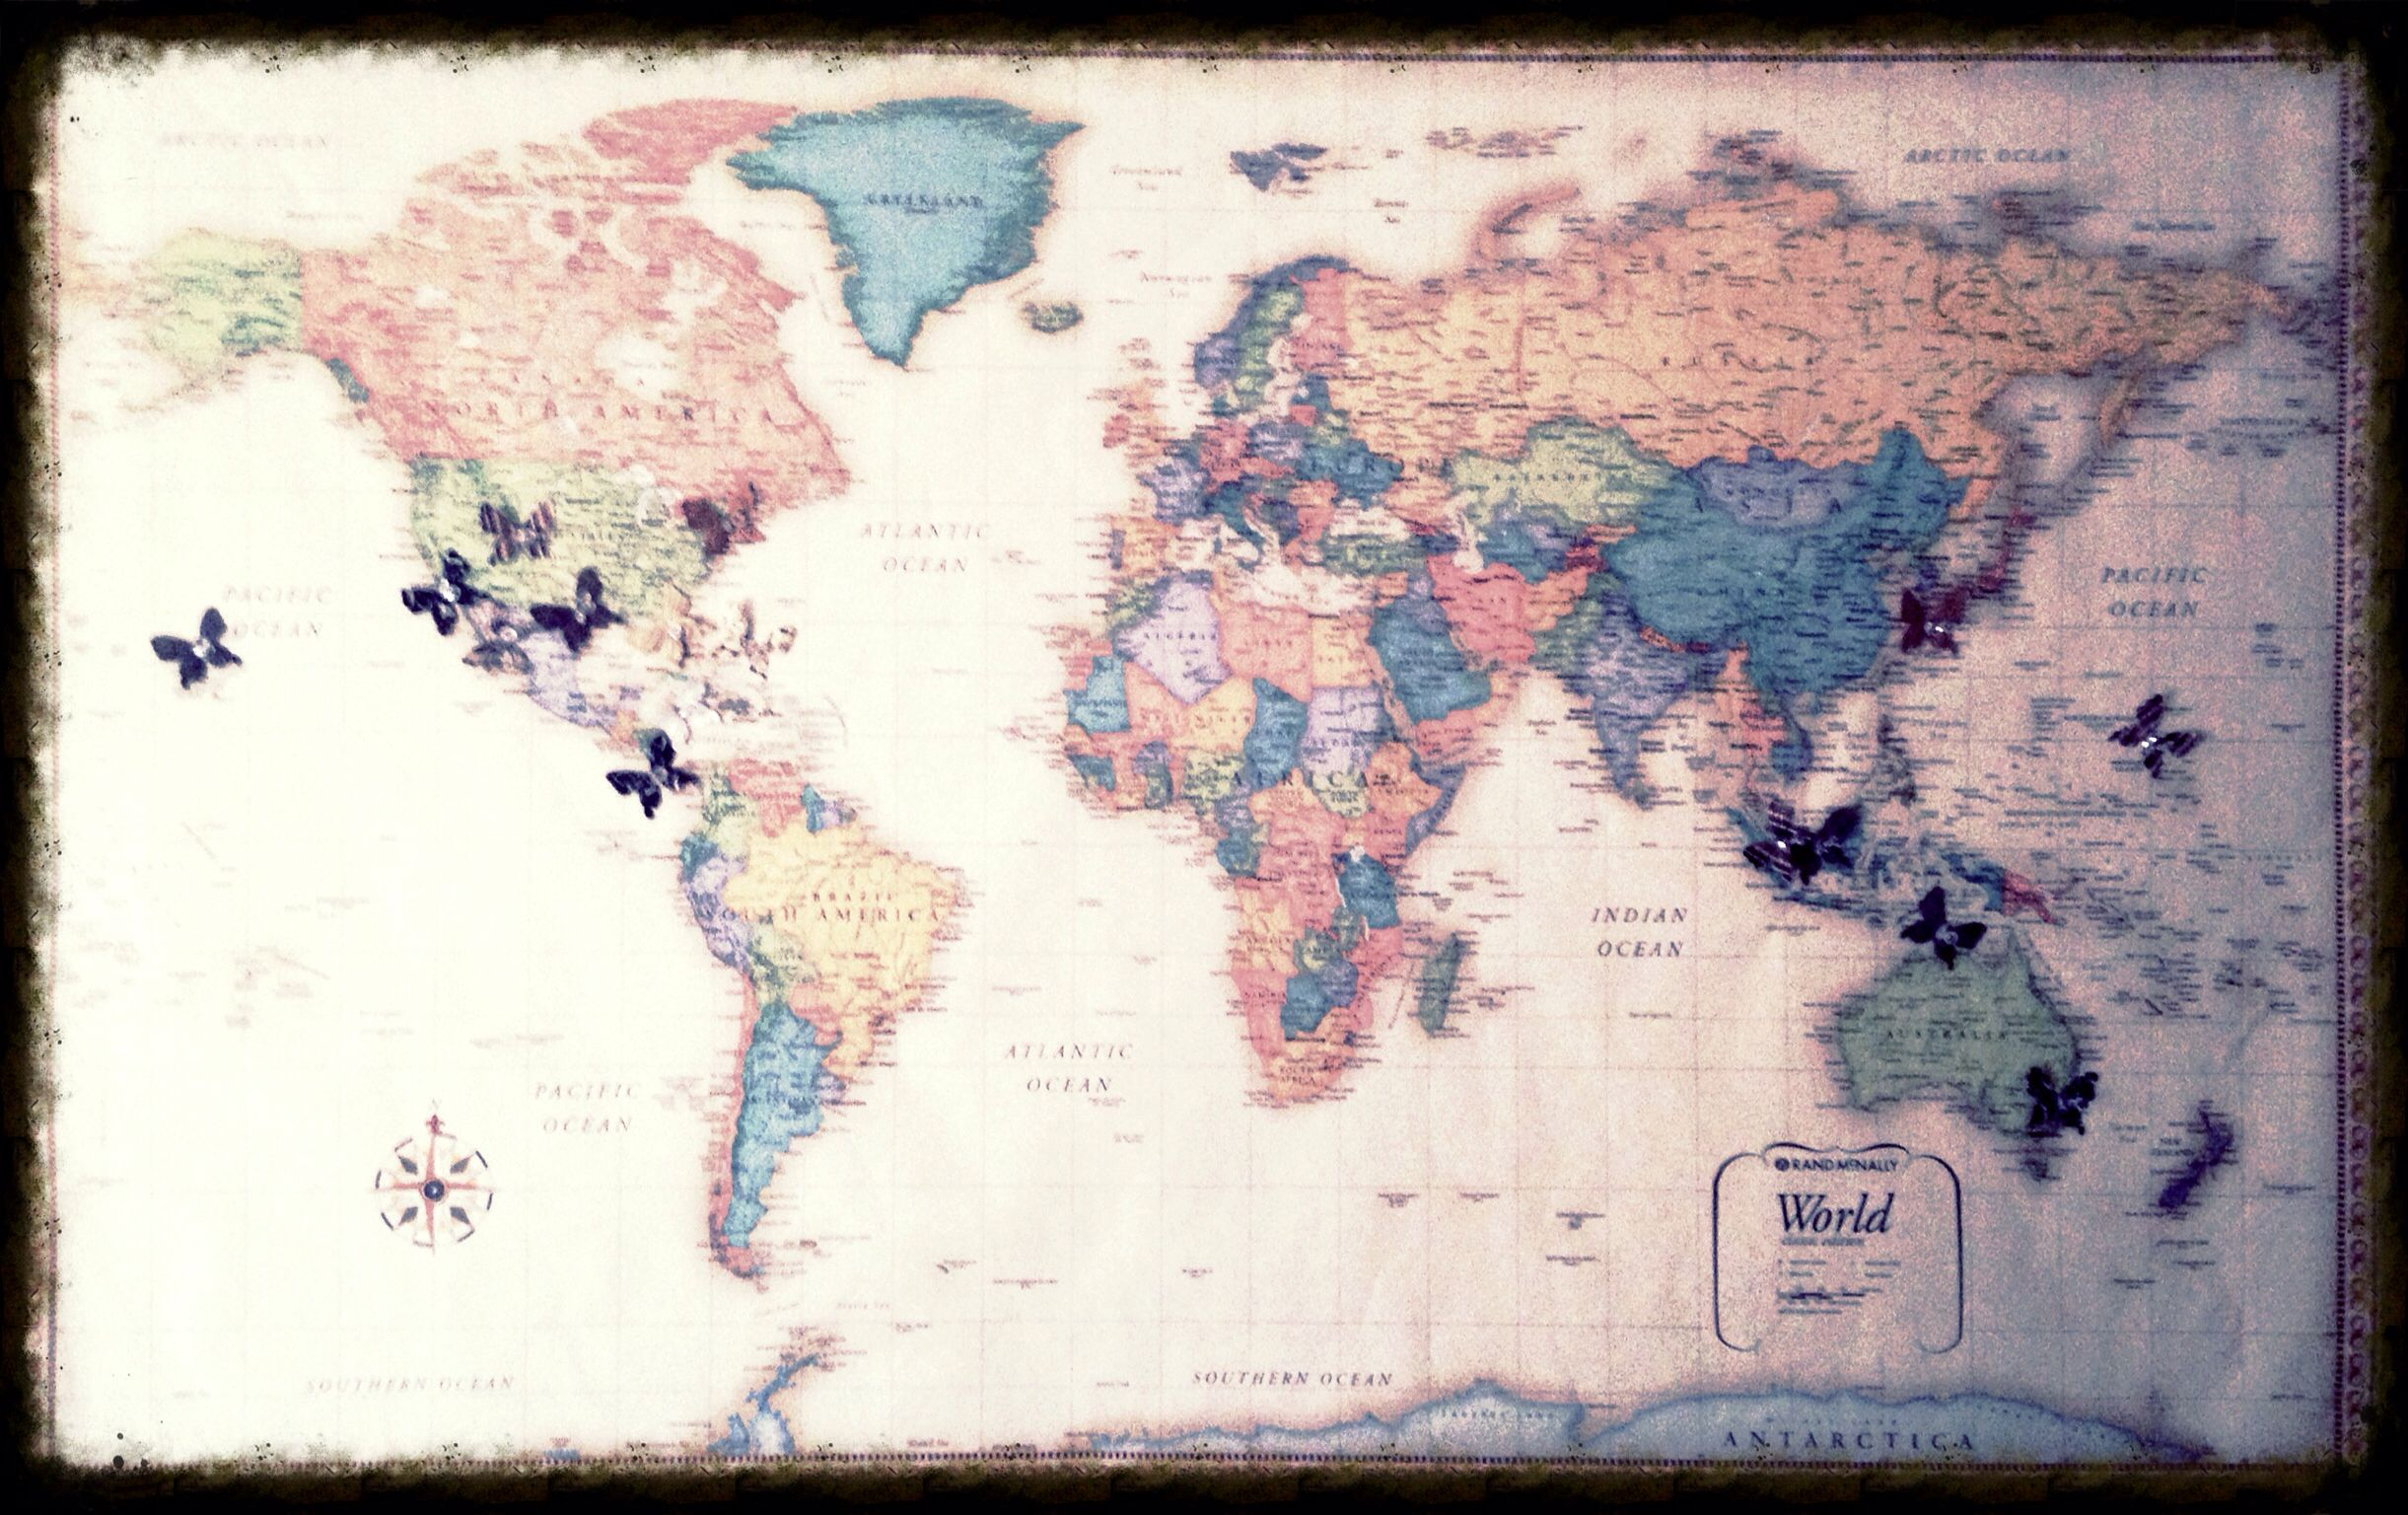 Diy world map traveling tracker travel pinterest dorm diy world map traveling tracker gumiabroncs